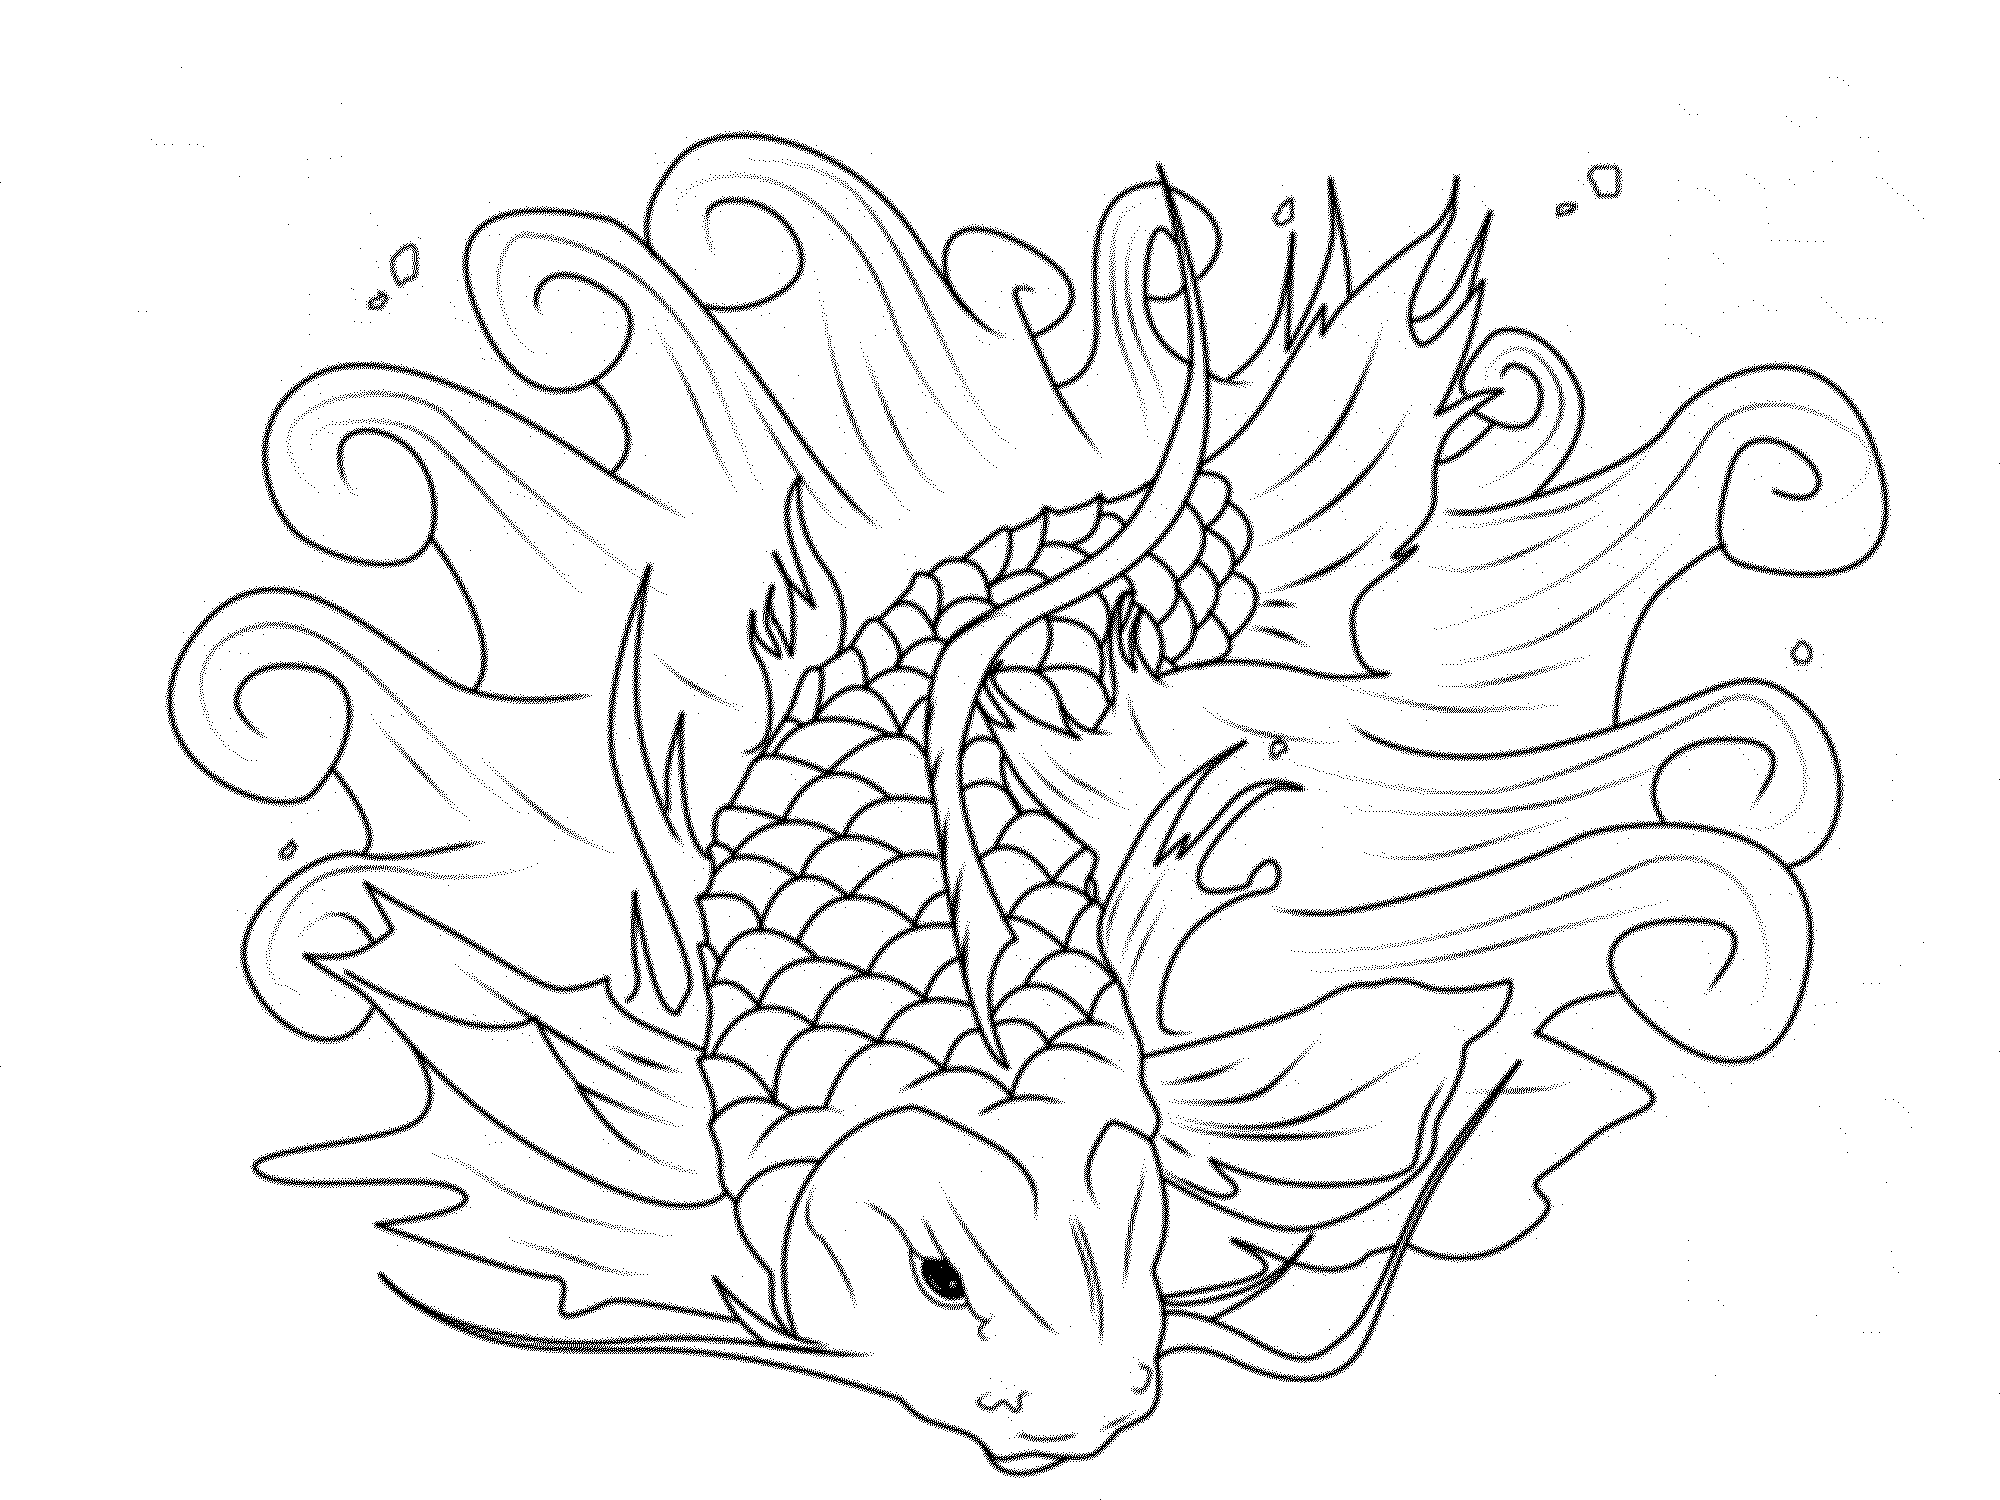 Uncategorized Realistic Fish Coloring Pages print download cute and educative fish coloring pages koi page